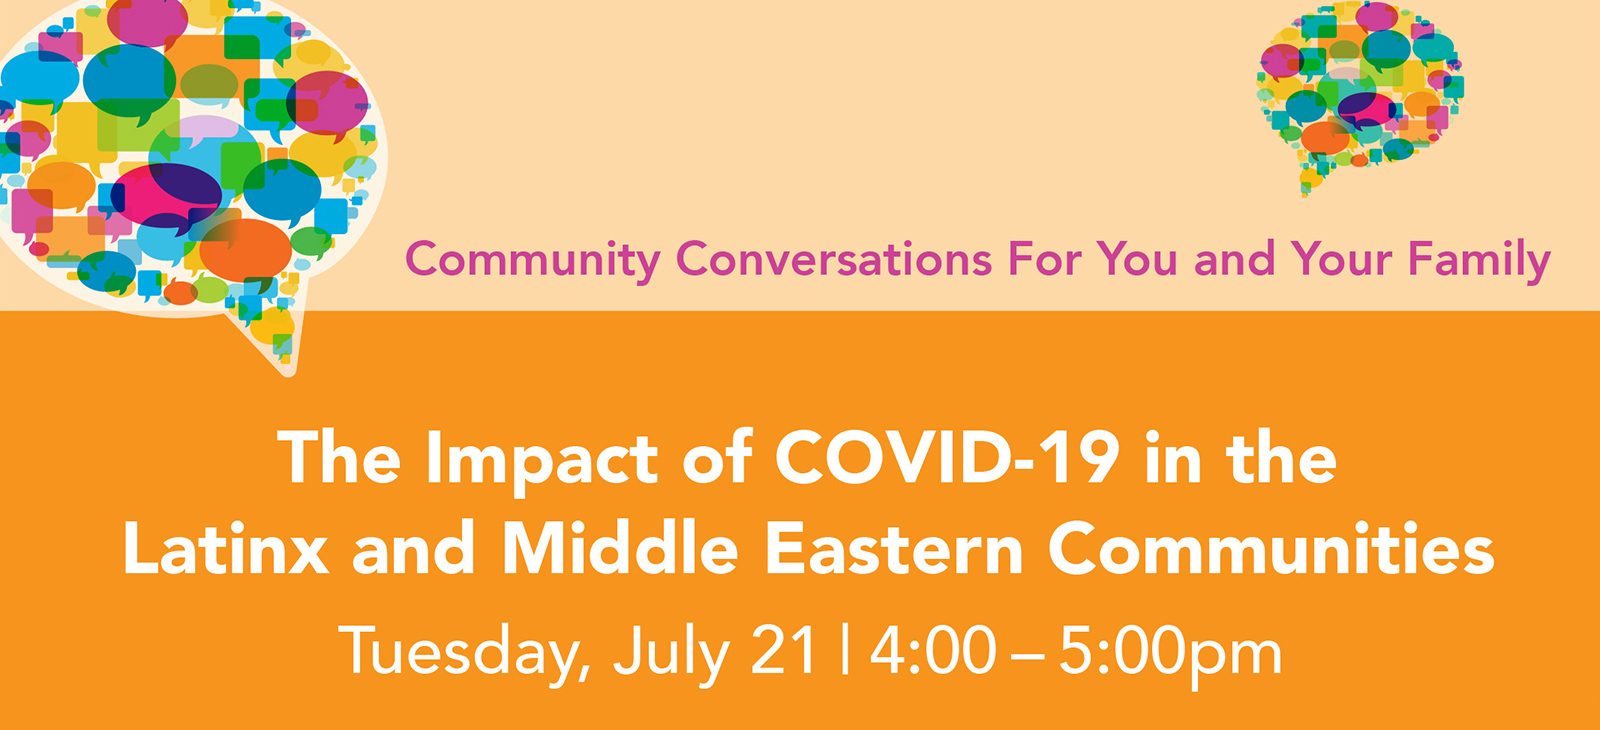 The Impact of Covid-19 in the Latinx and Middle Eastern Communities graphic